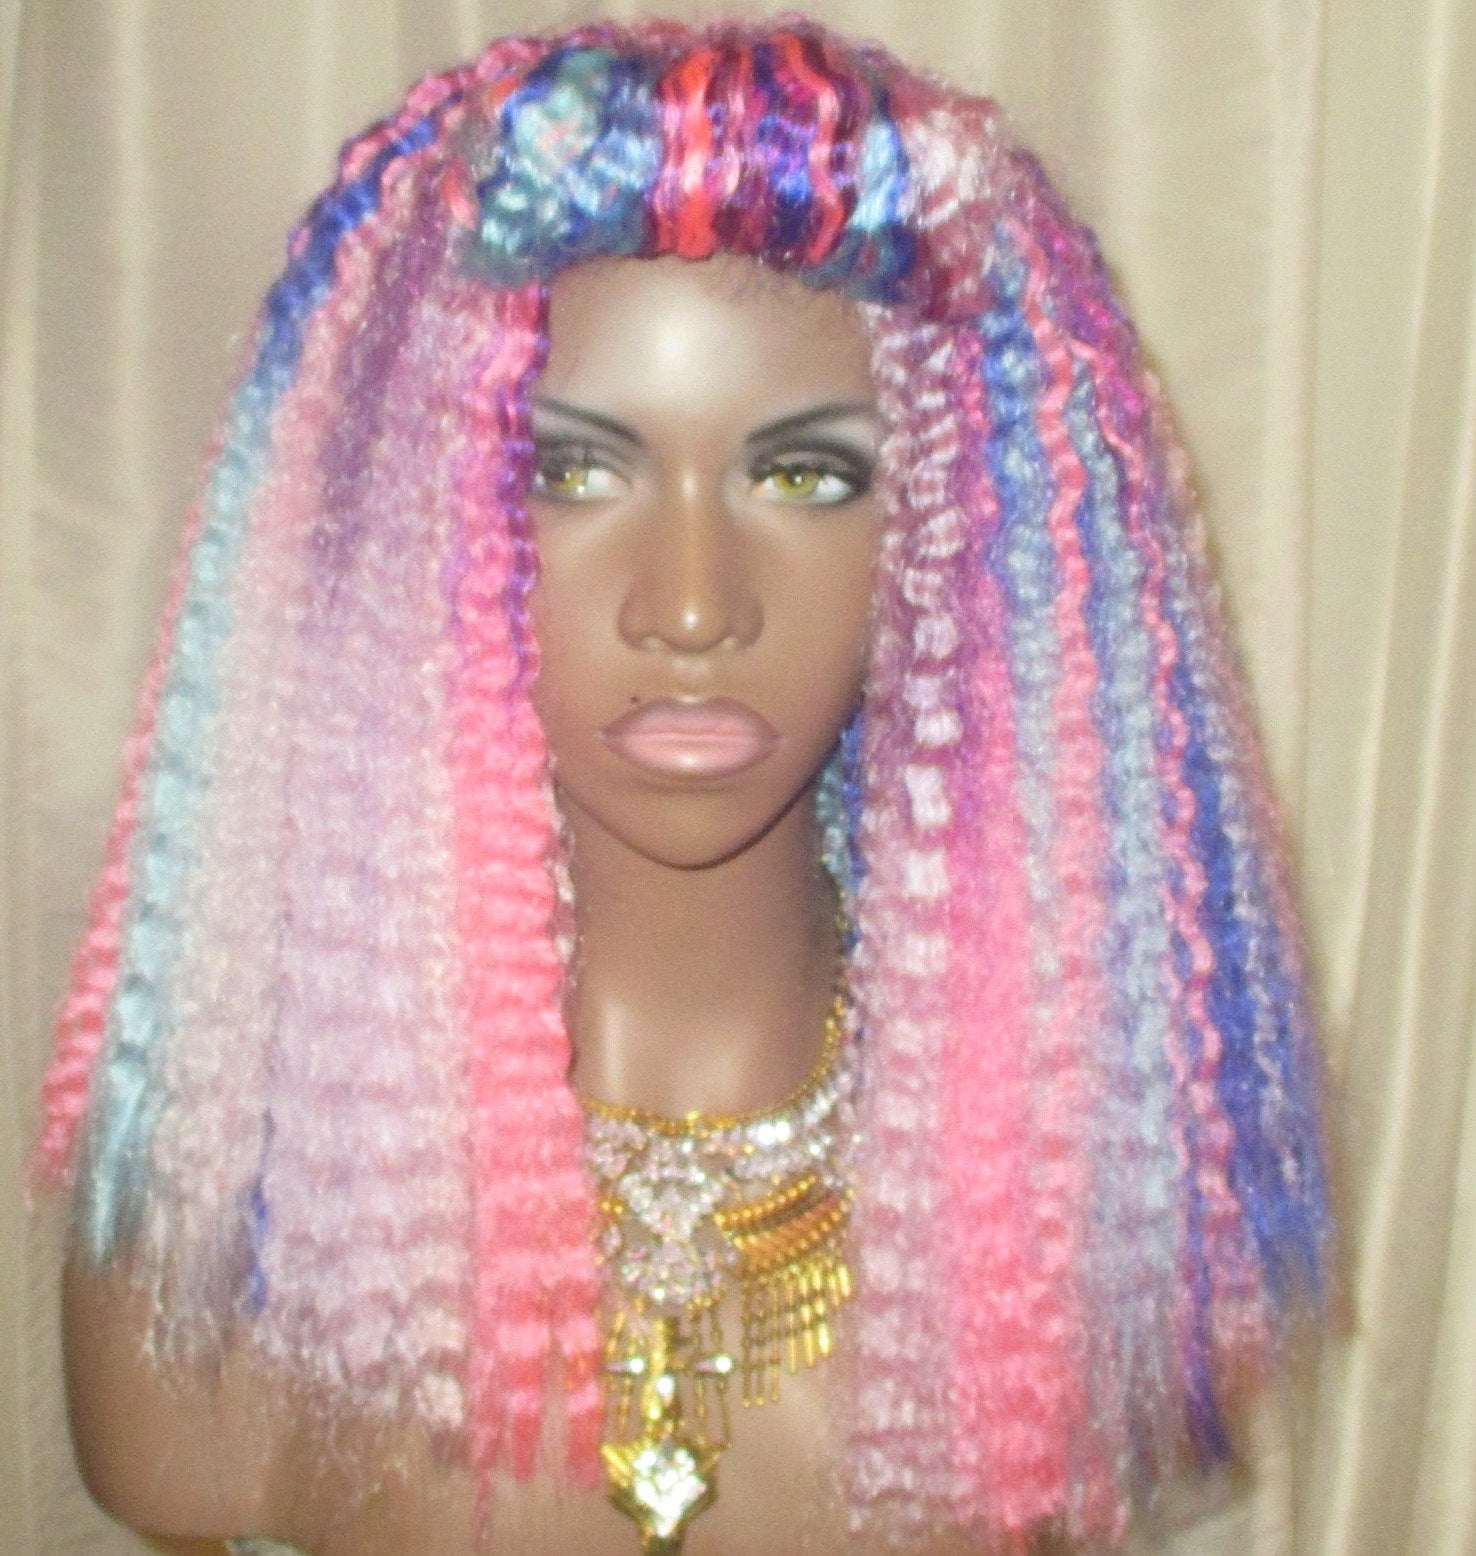 Unicorn Kinks Wig Multi Color Textured Unit Kinky Crimped Natural Hair by Essence Wigs